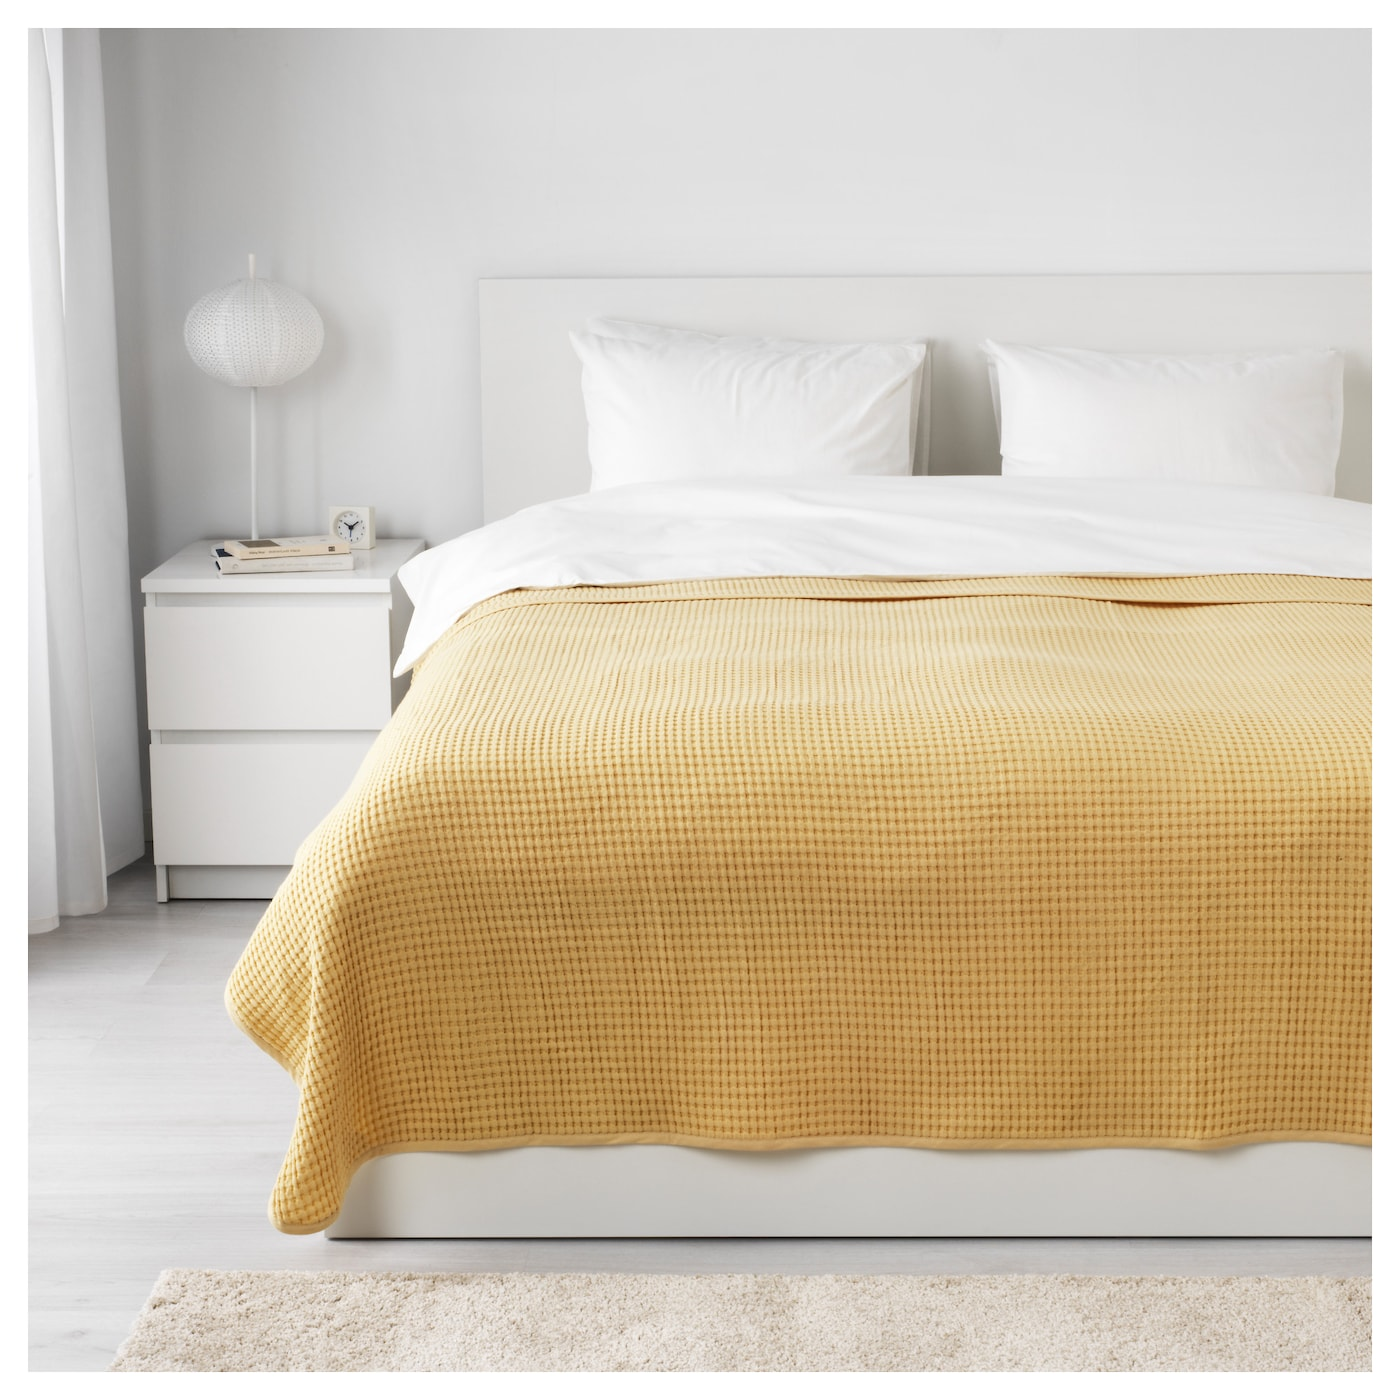 IKEA VÅRELD bedspread Can be used as bedspread for a double size bed or as a large size blanket.